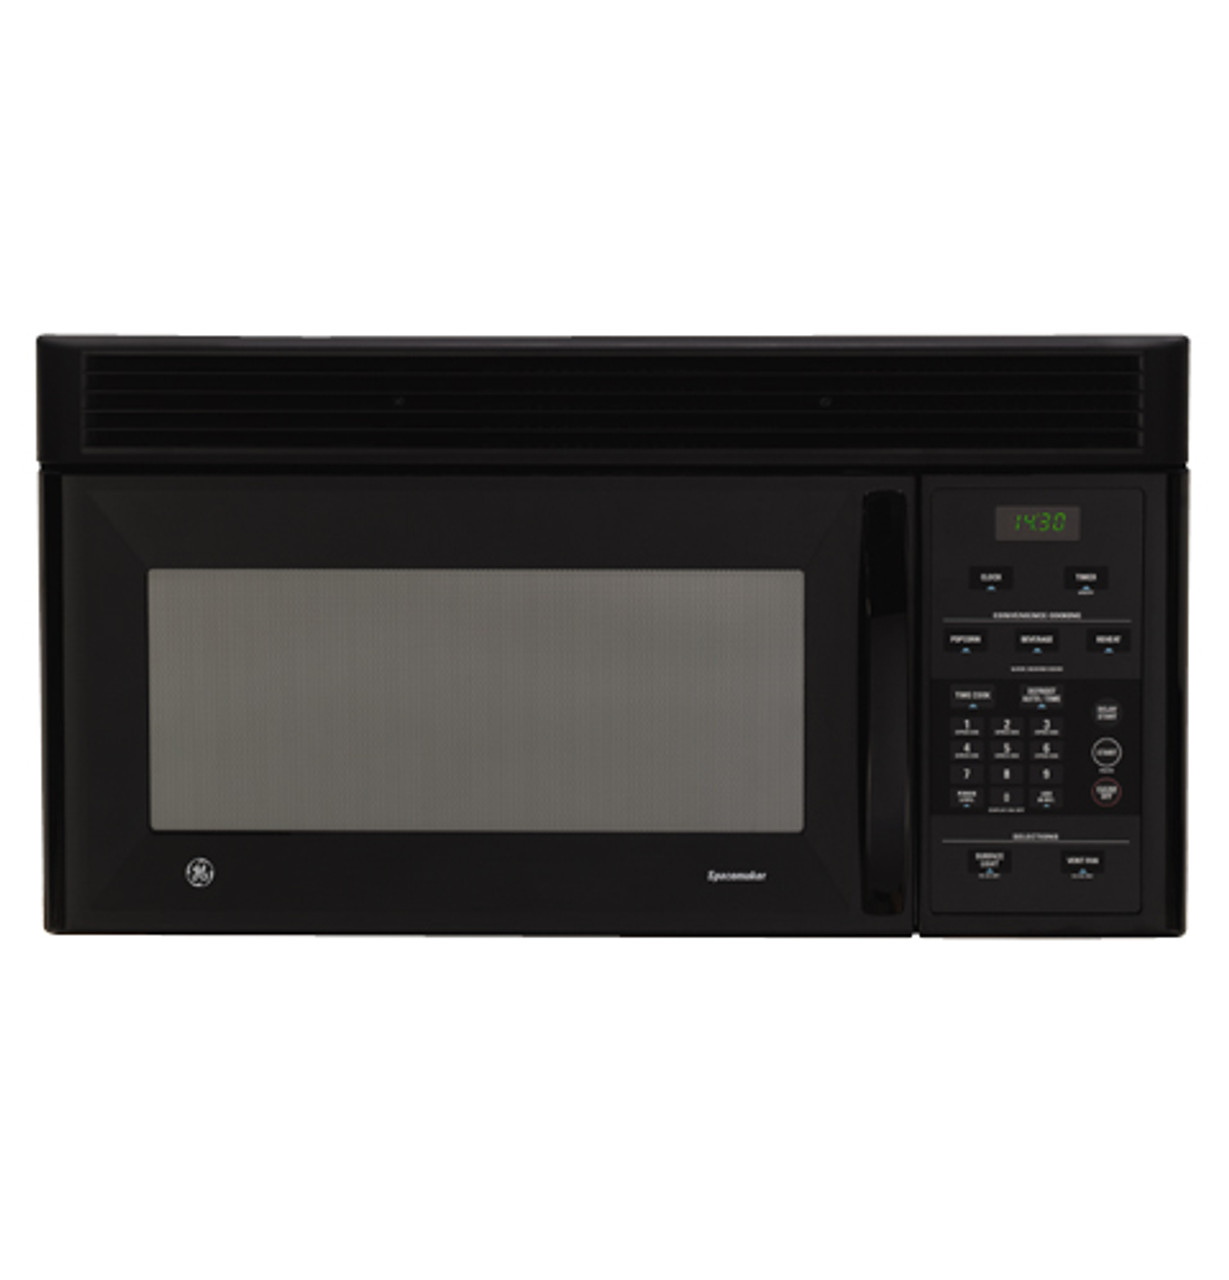 ge spacemaker over the range microwave oven jvm1430bd